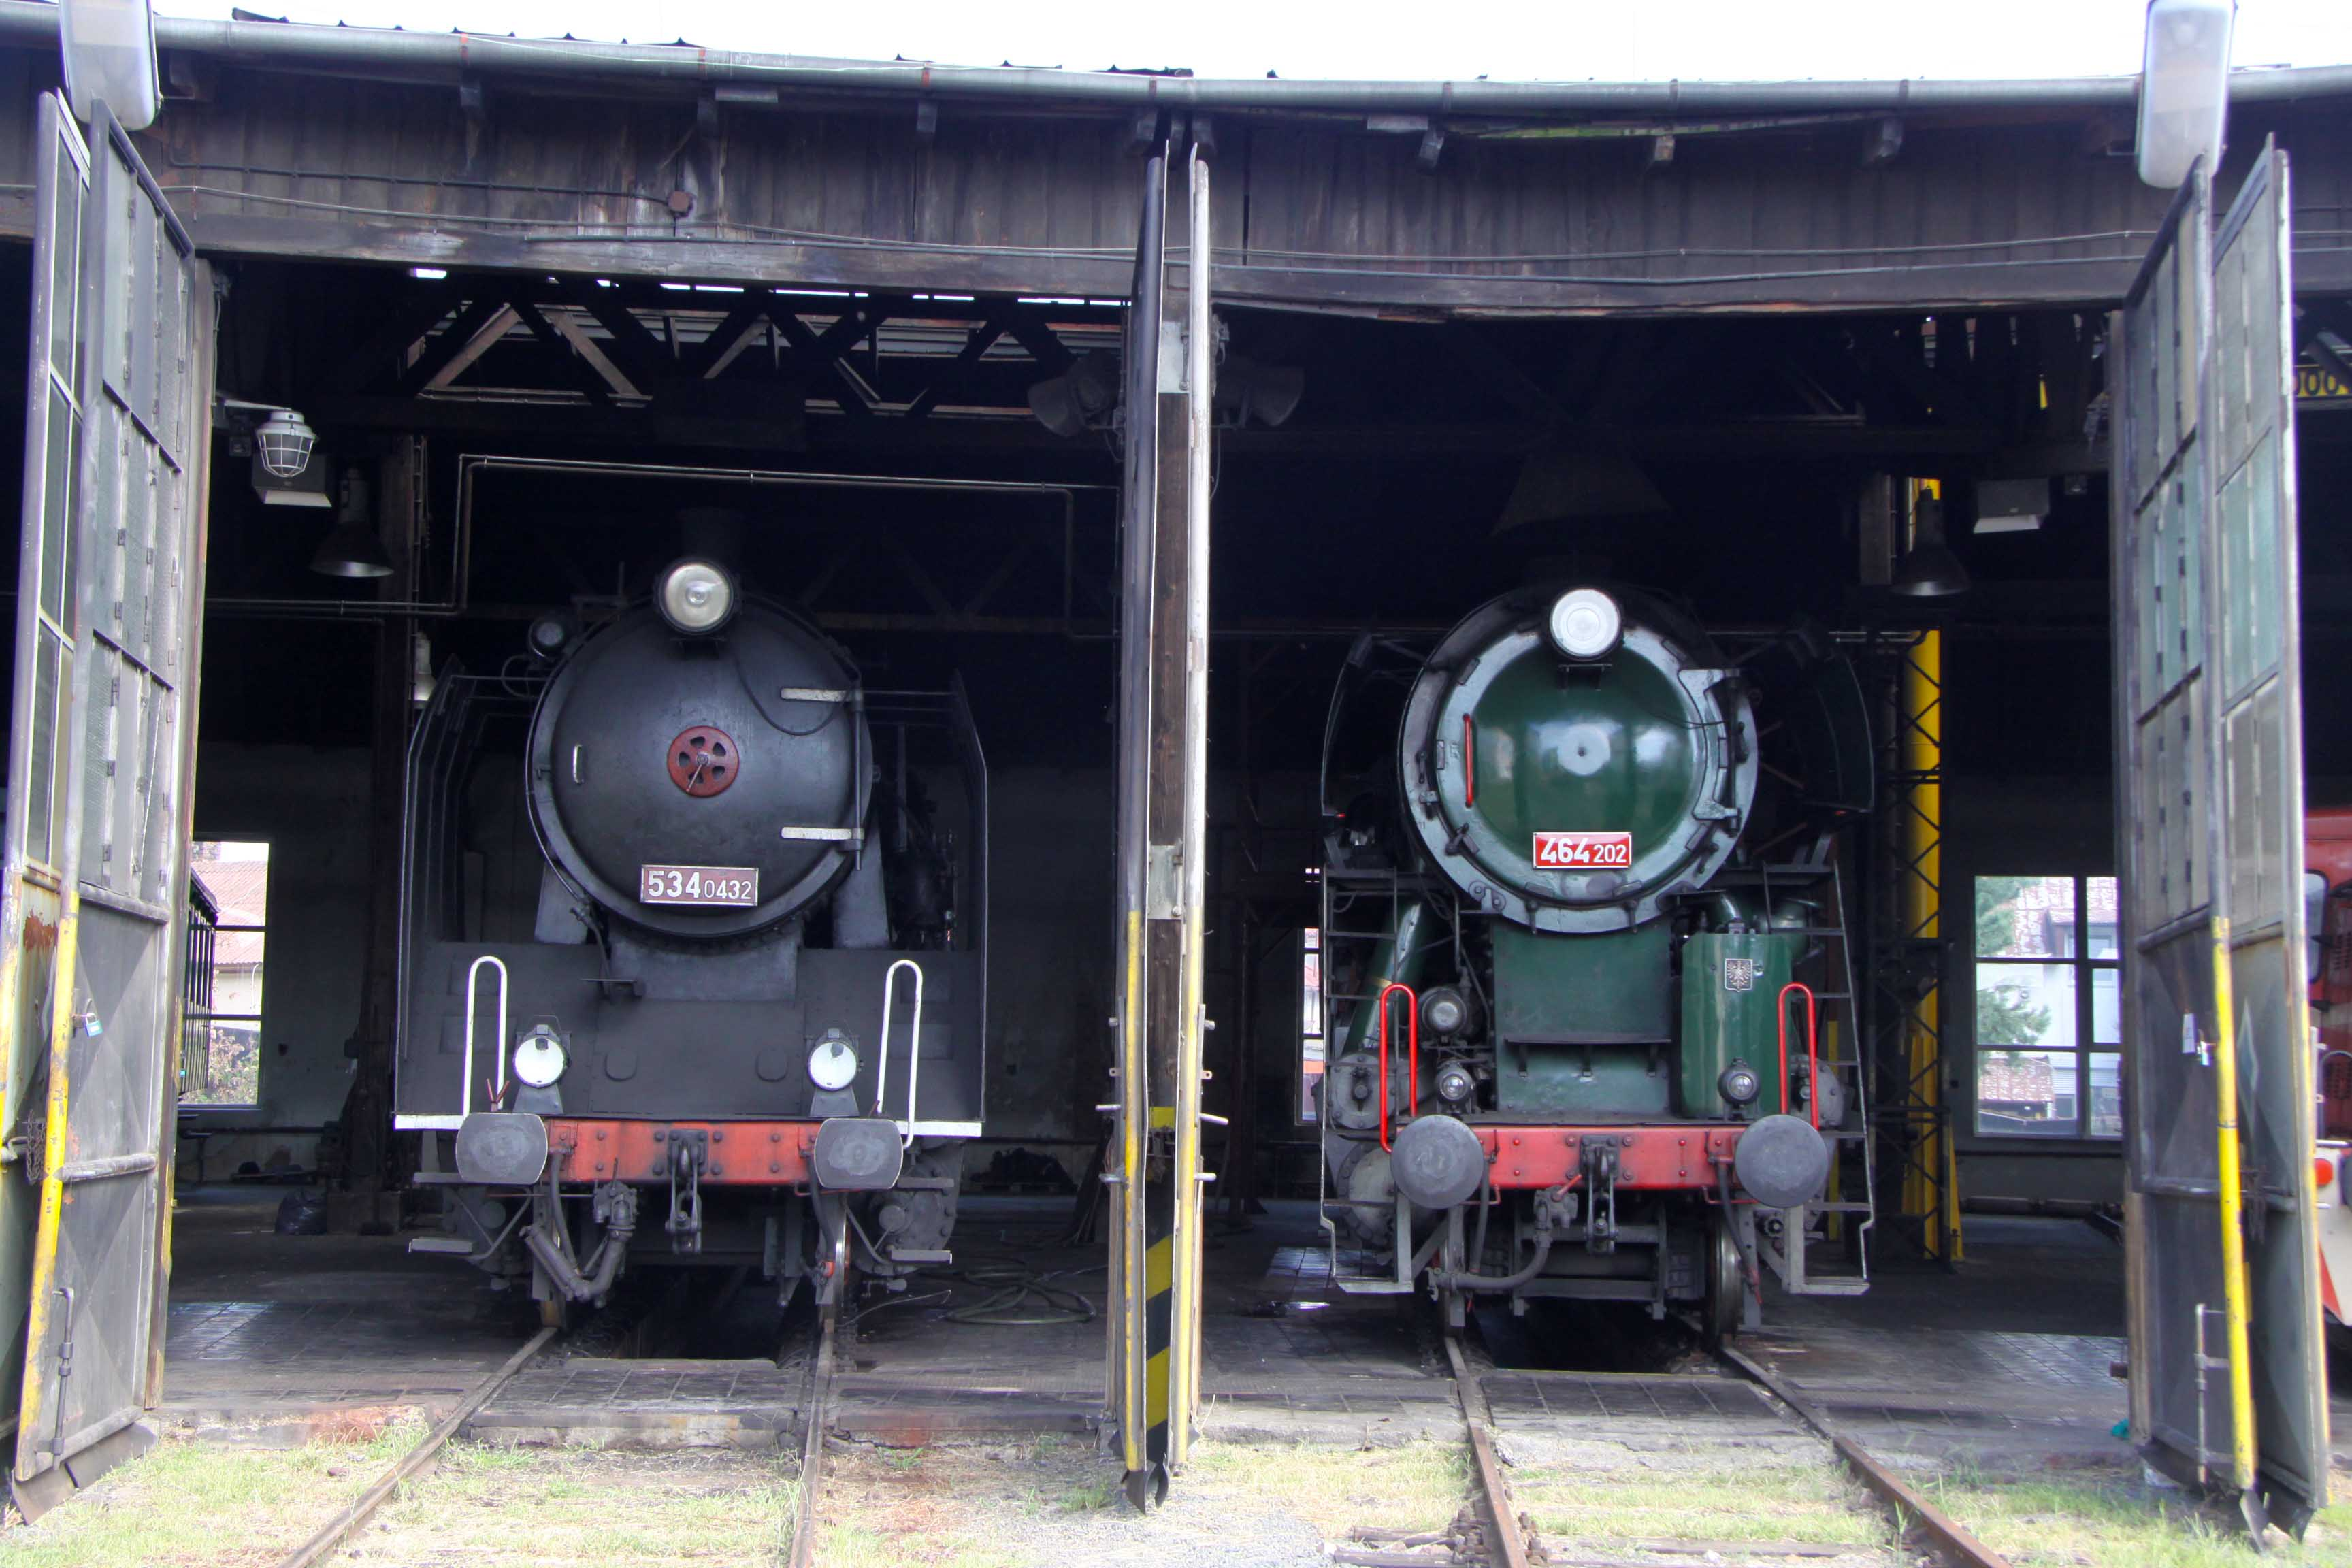 Exhibition of historic railway vehicles of the ČD Czech Railways Museum